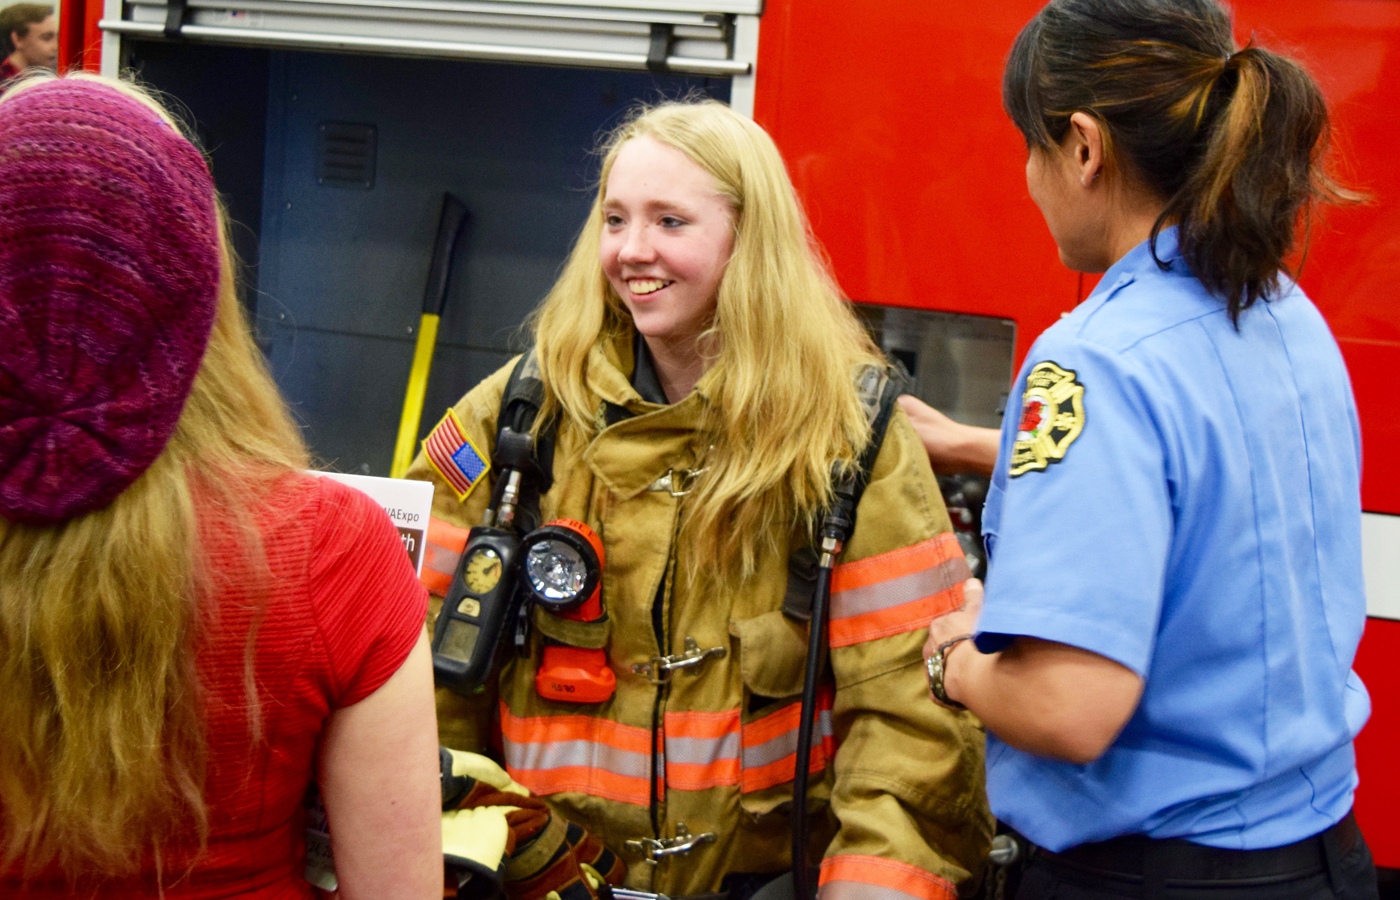 NW Youth Careers Expo: Portland Fire Bureau